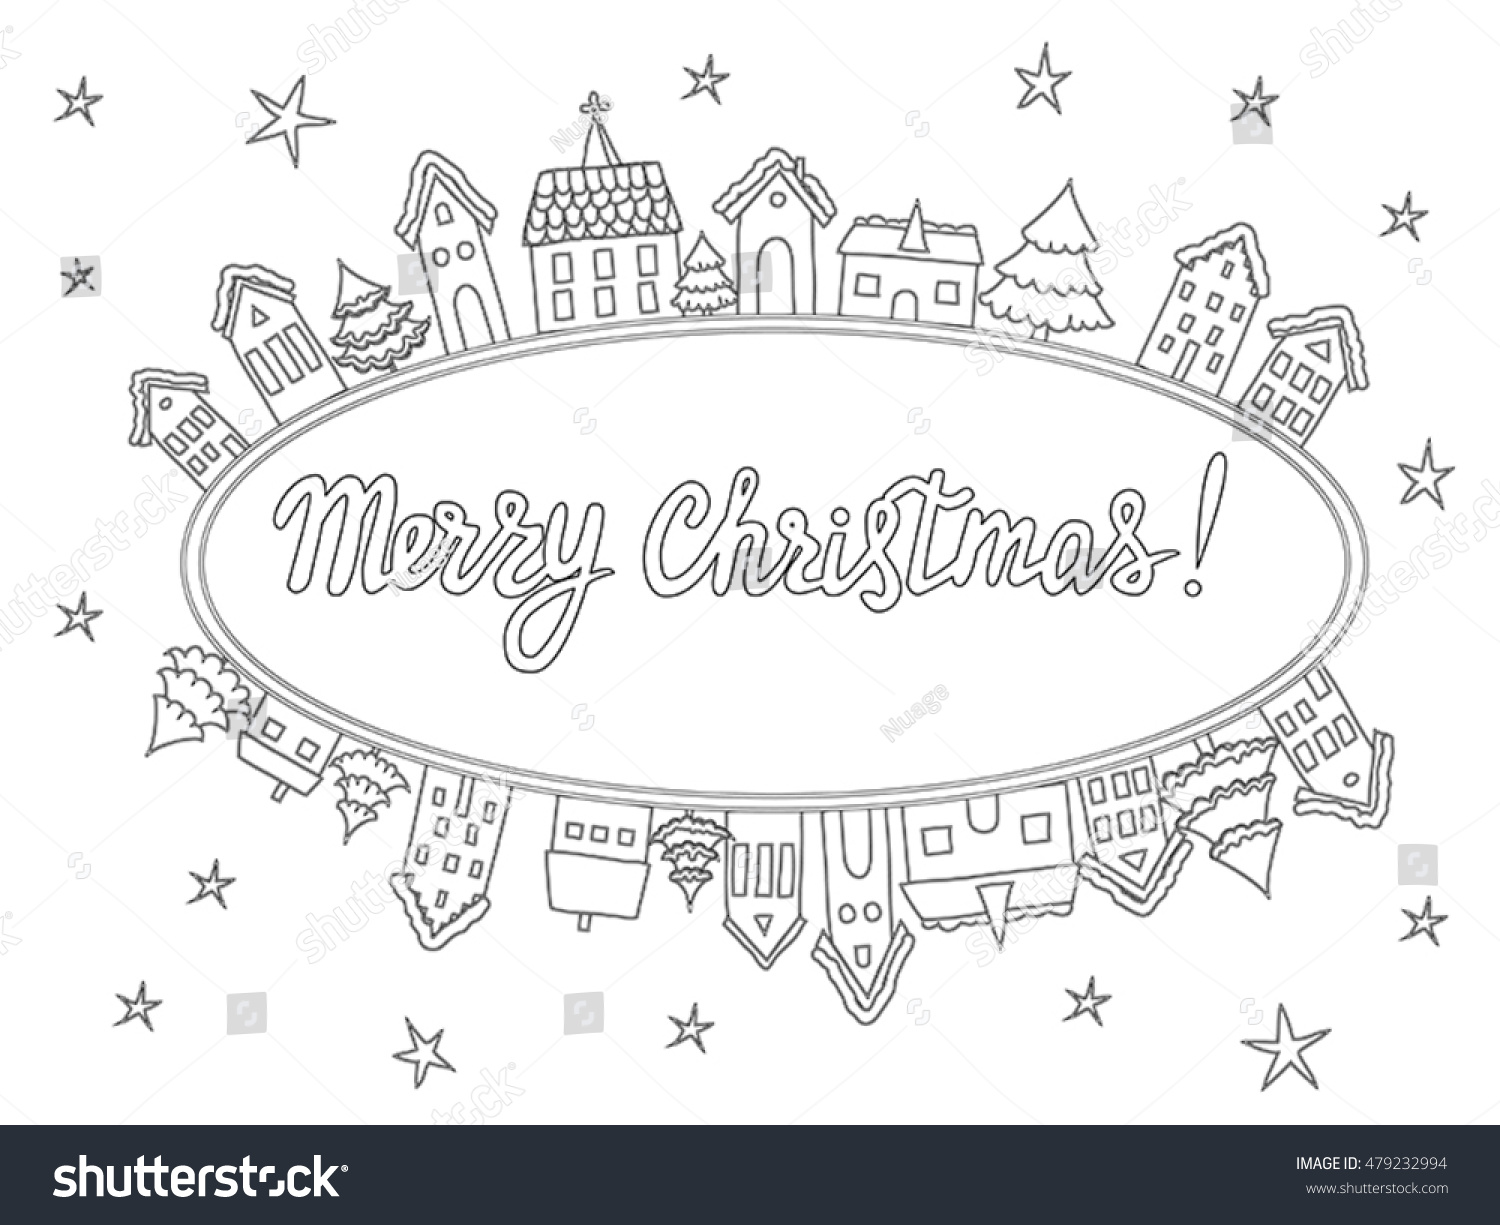 Christmas cards coloring - Vector Template For Coloring Pages Christmas Cards Invitations Backgrounds In Black And White